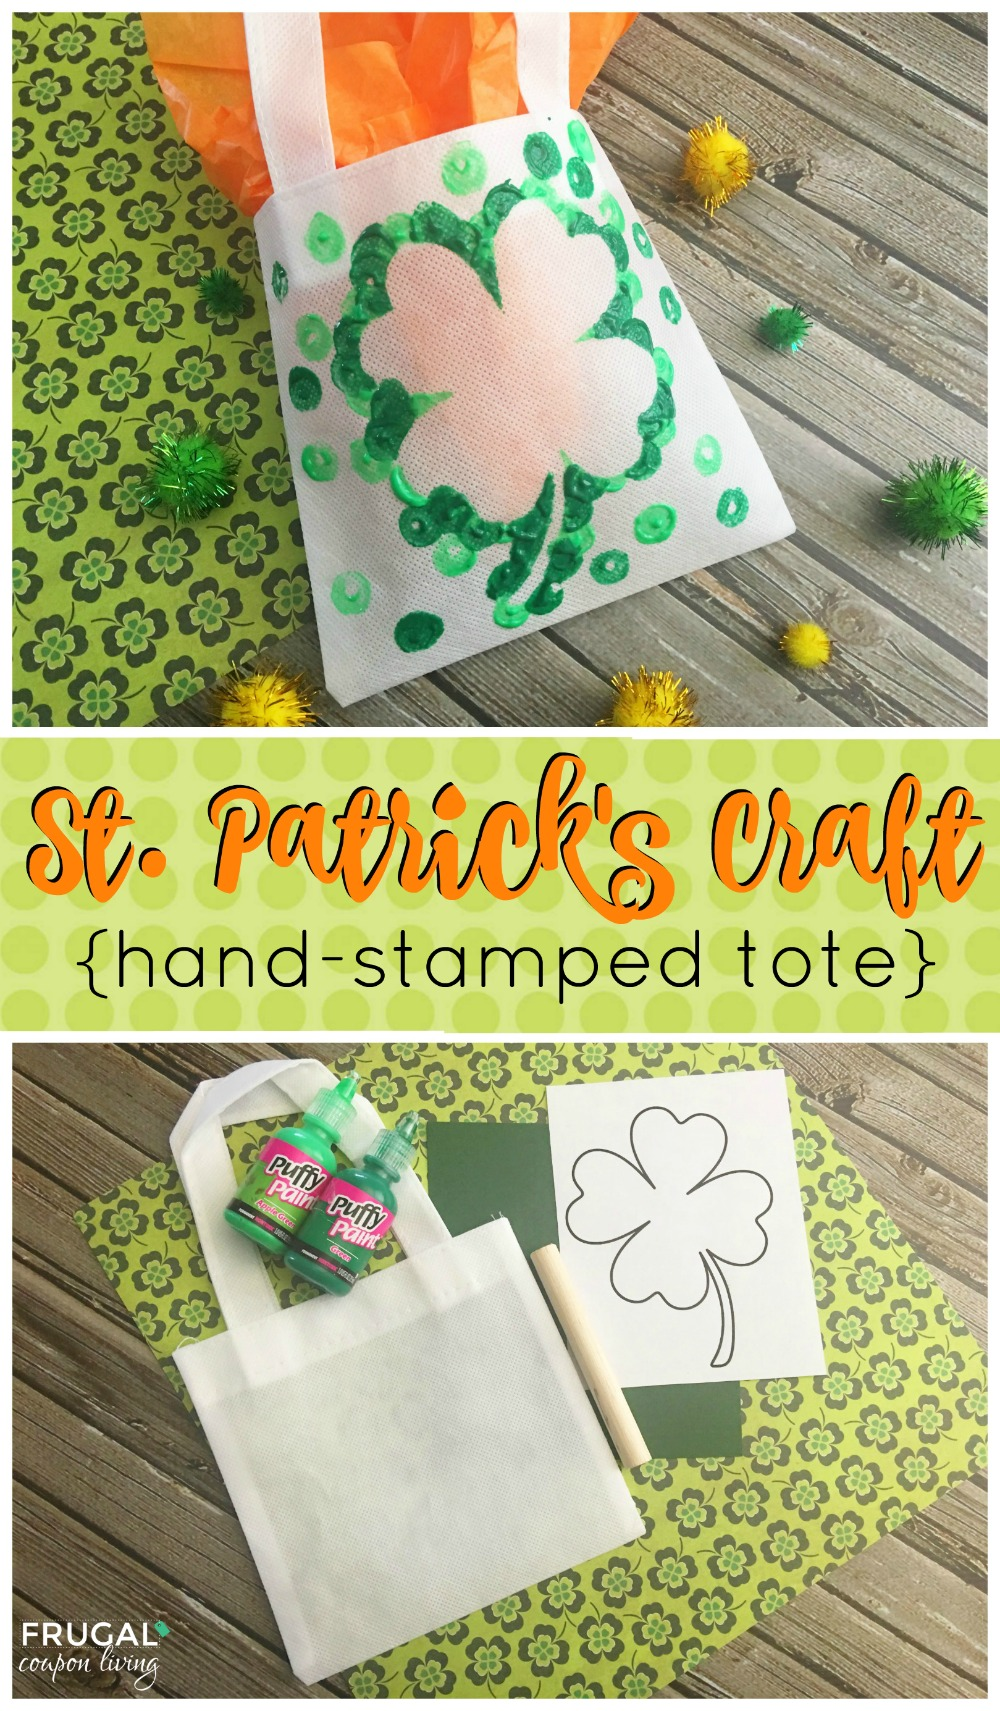 Saint-Patricks-Day-Tote-Frugal-Coupon-LIving